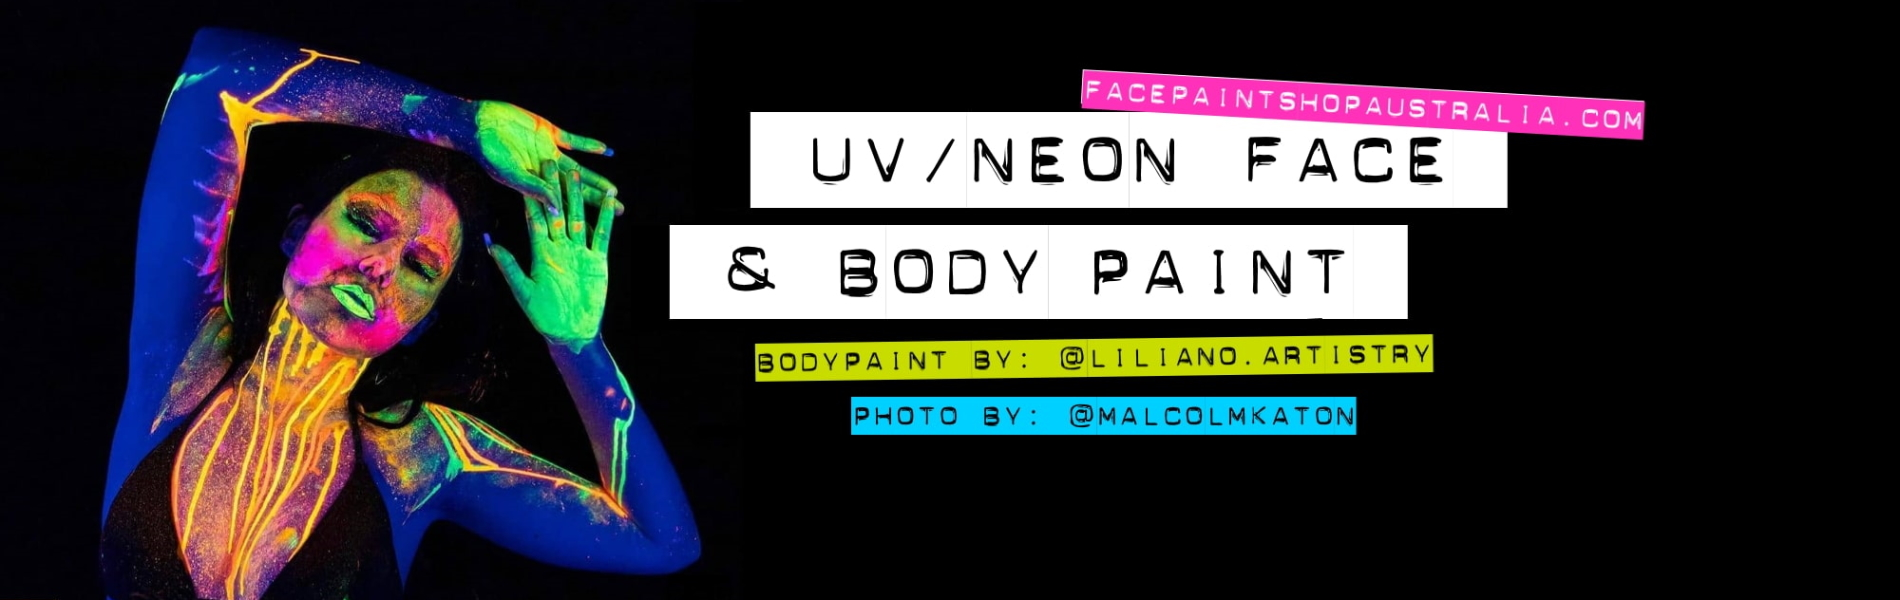 face body paint uv neon glow in the dark